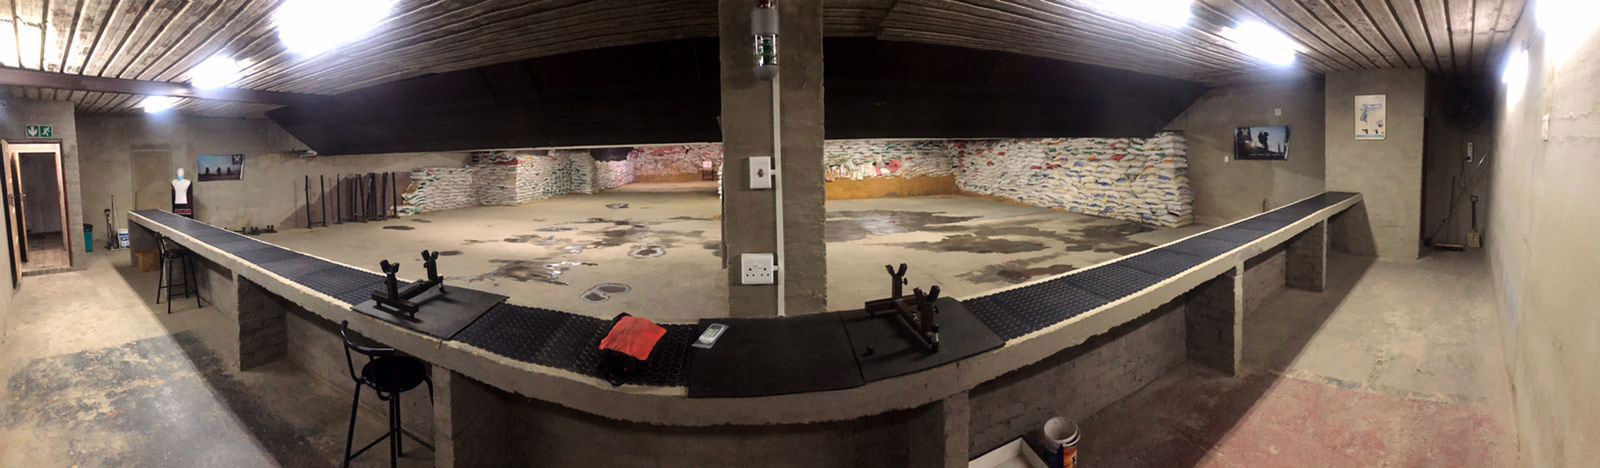 vosgunshop-indoor-shooting-range